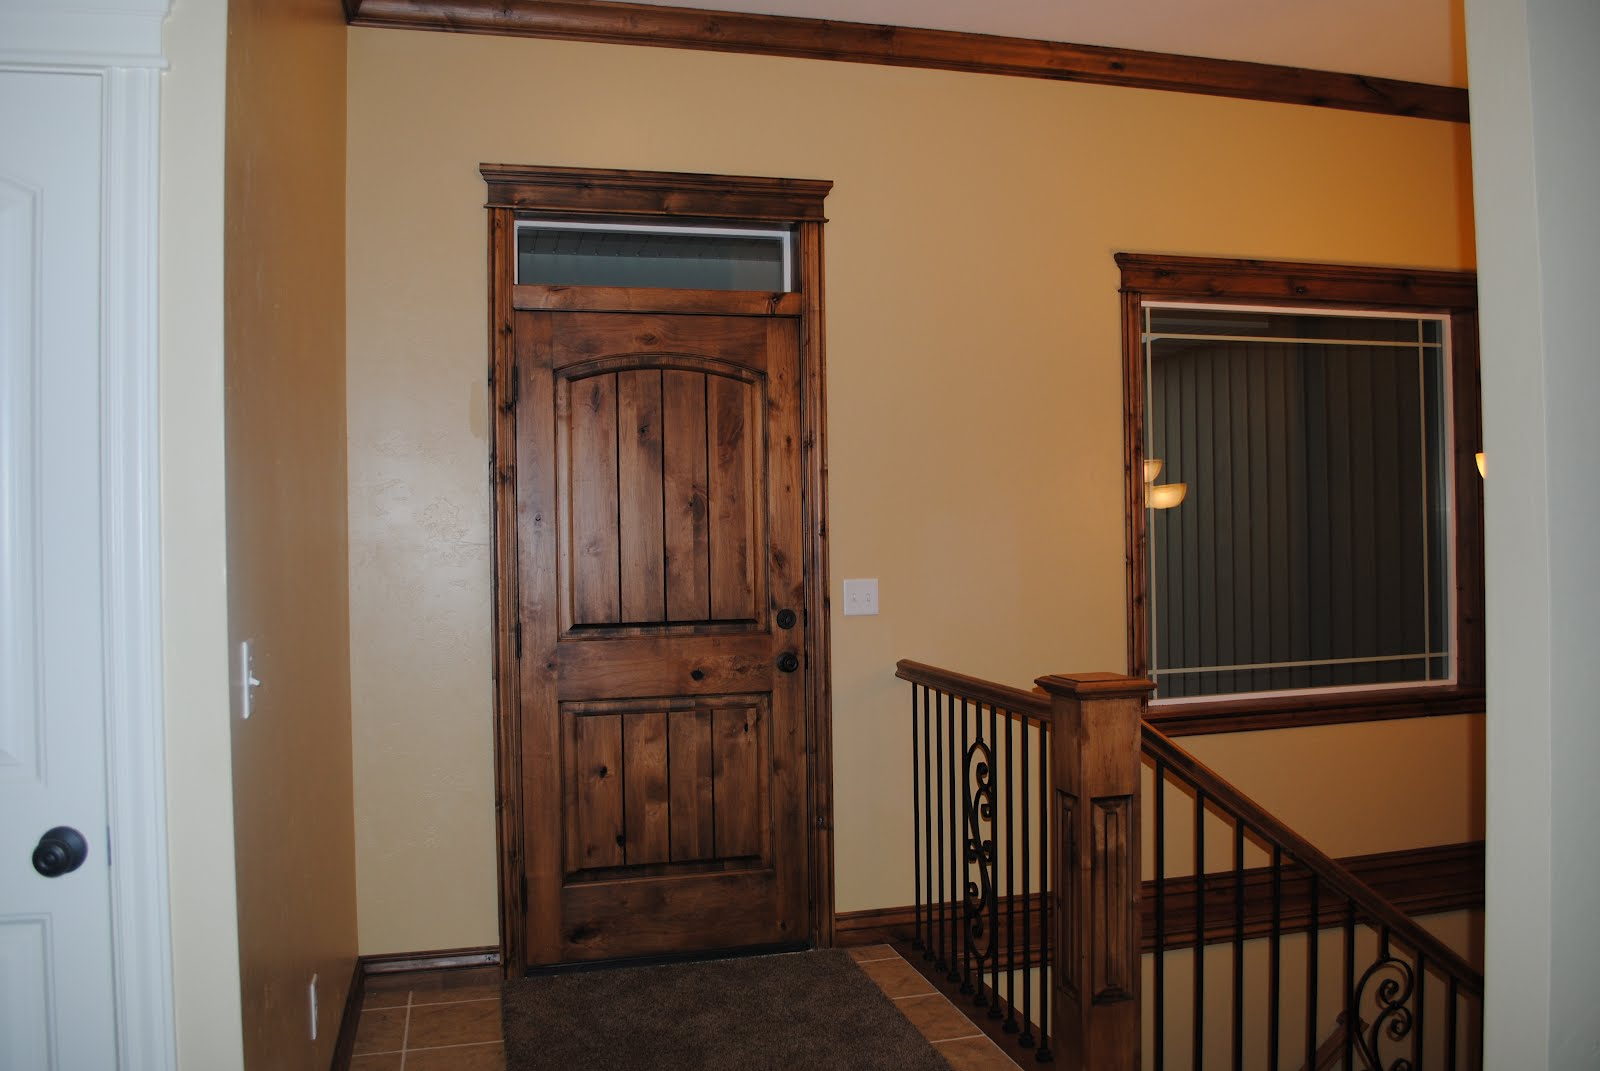 Knotty Alder Trim and Molding